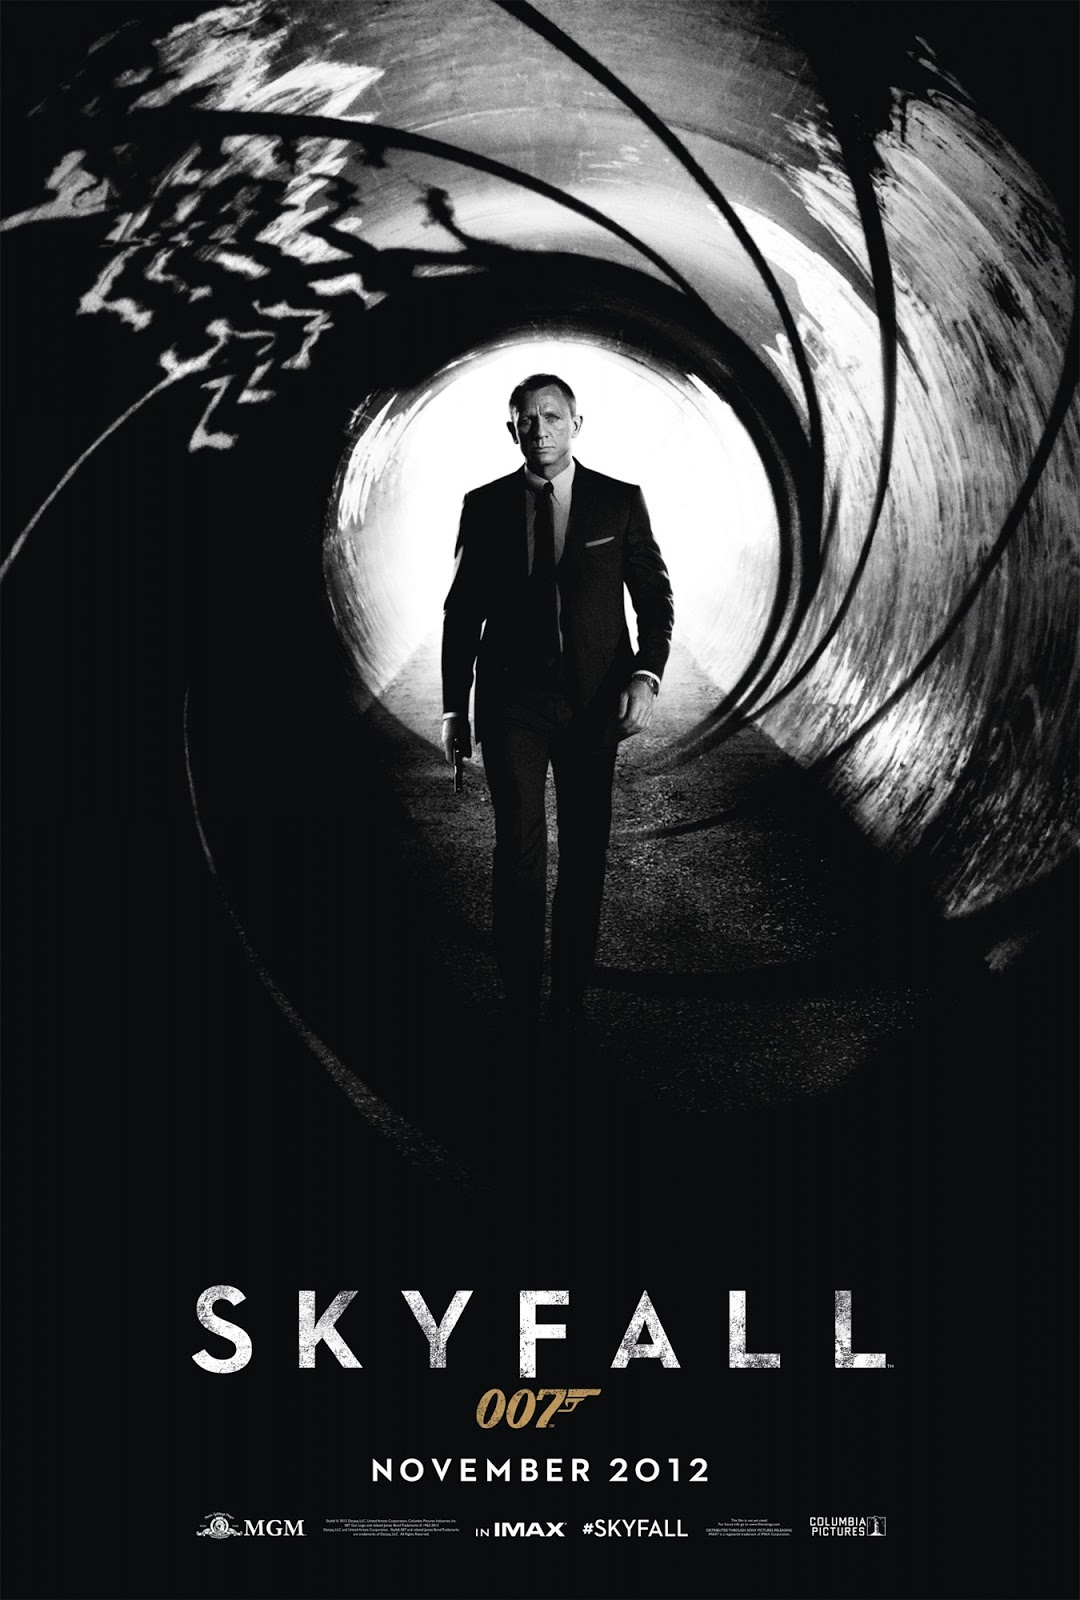 ... FINE ART DINER: Last Rat Standing: Skyfall & the Question Of Free Will